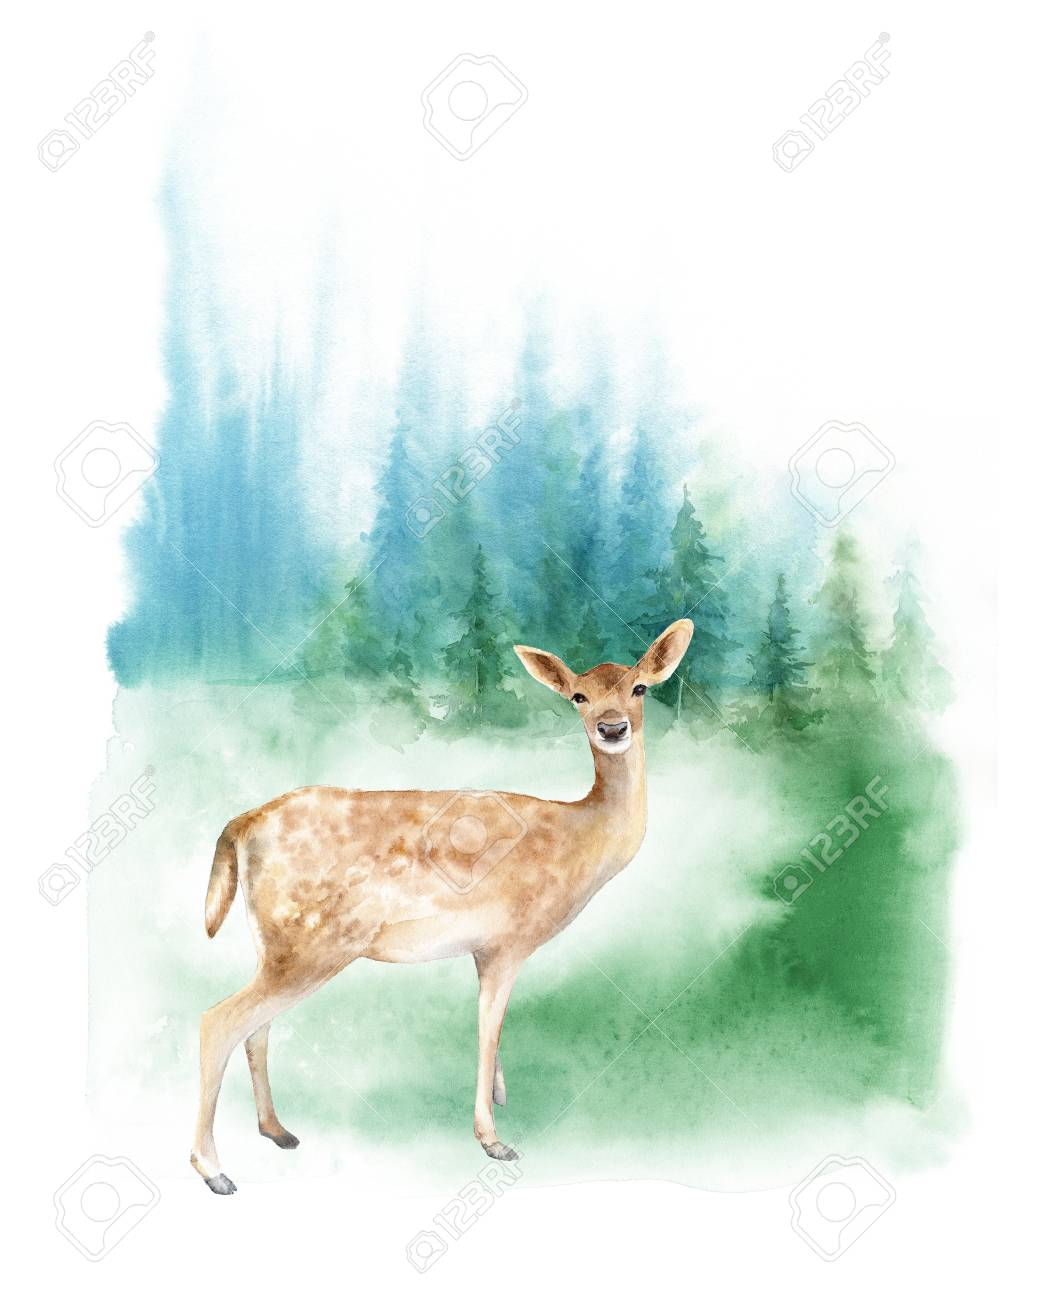 watercolor foggy forest landscape the deer on the lawn template